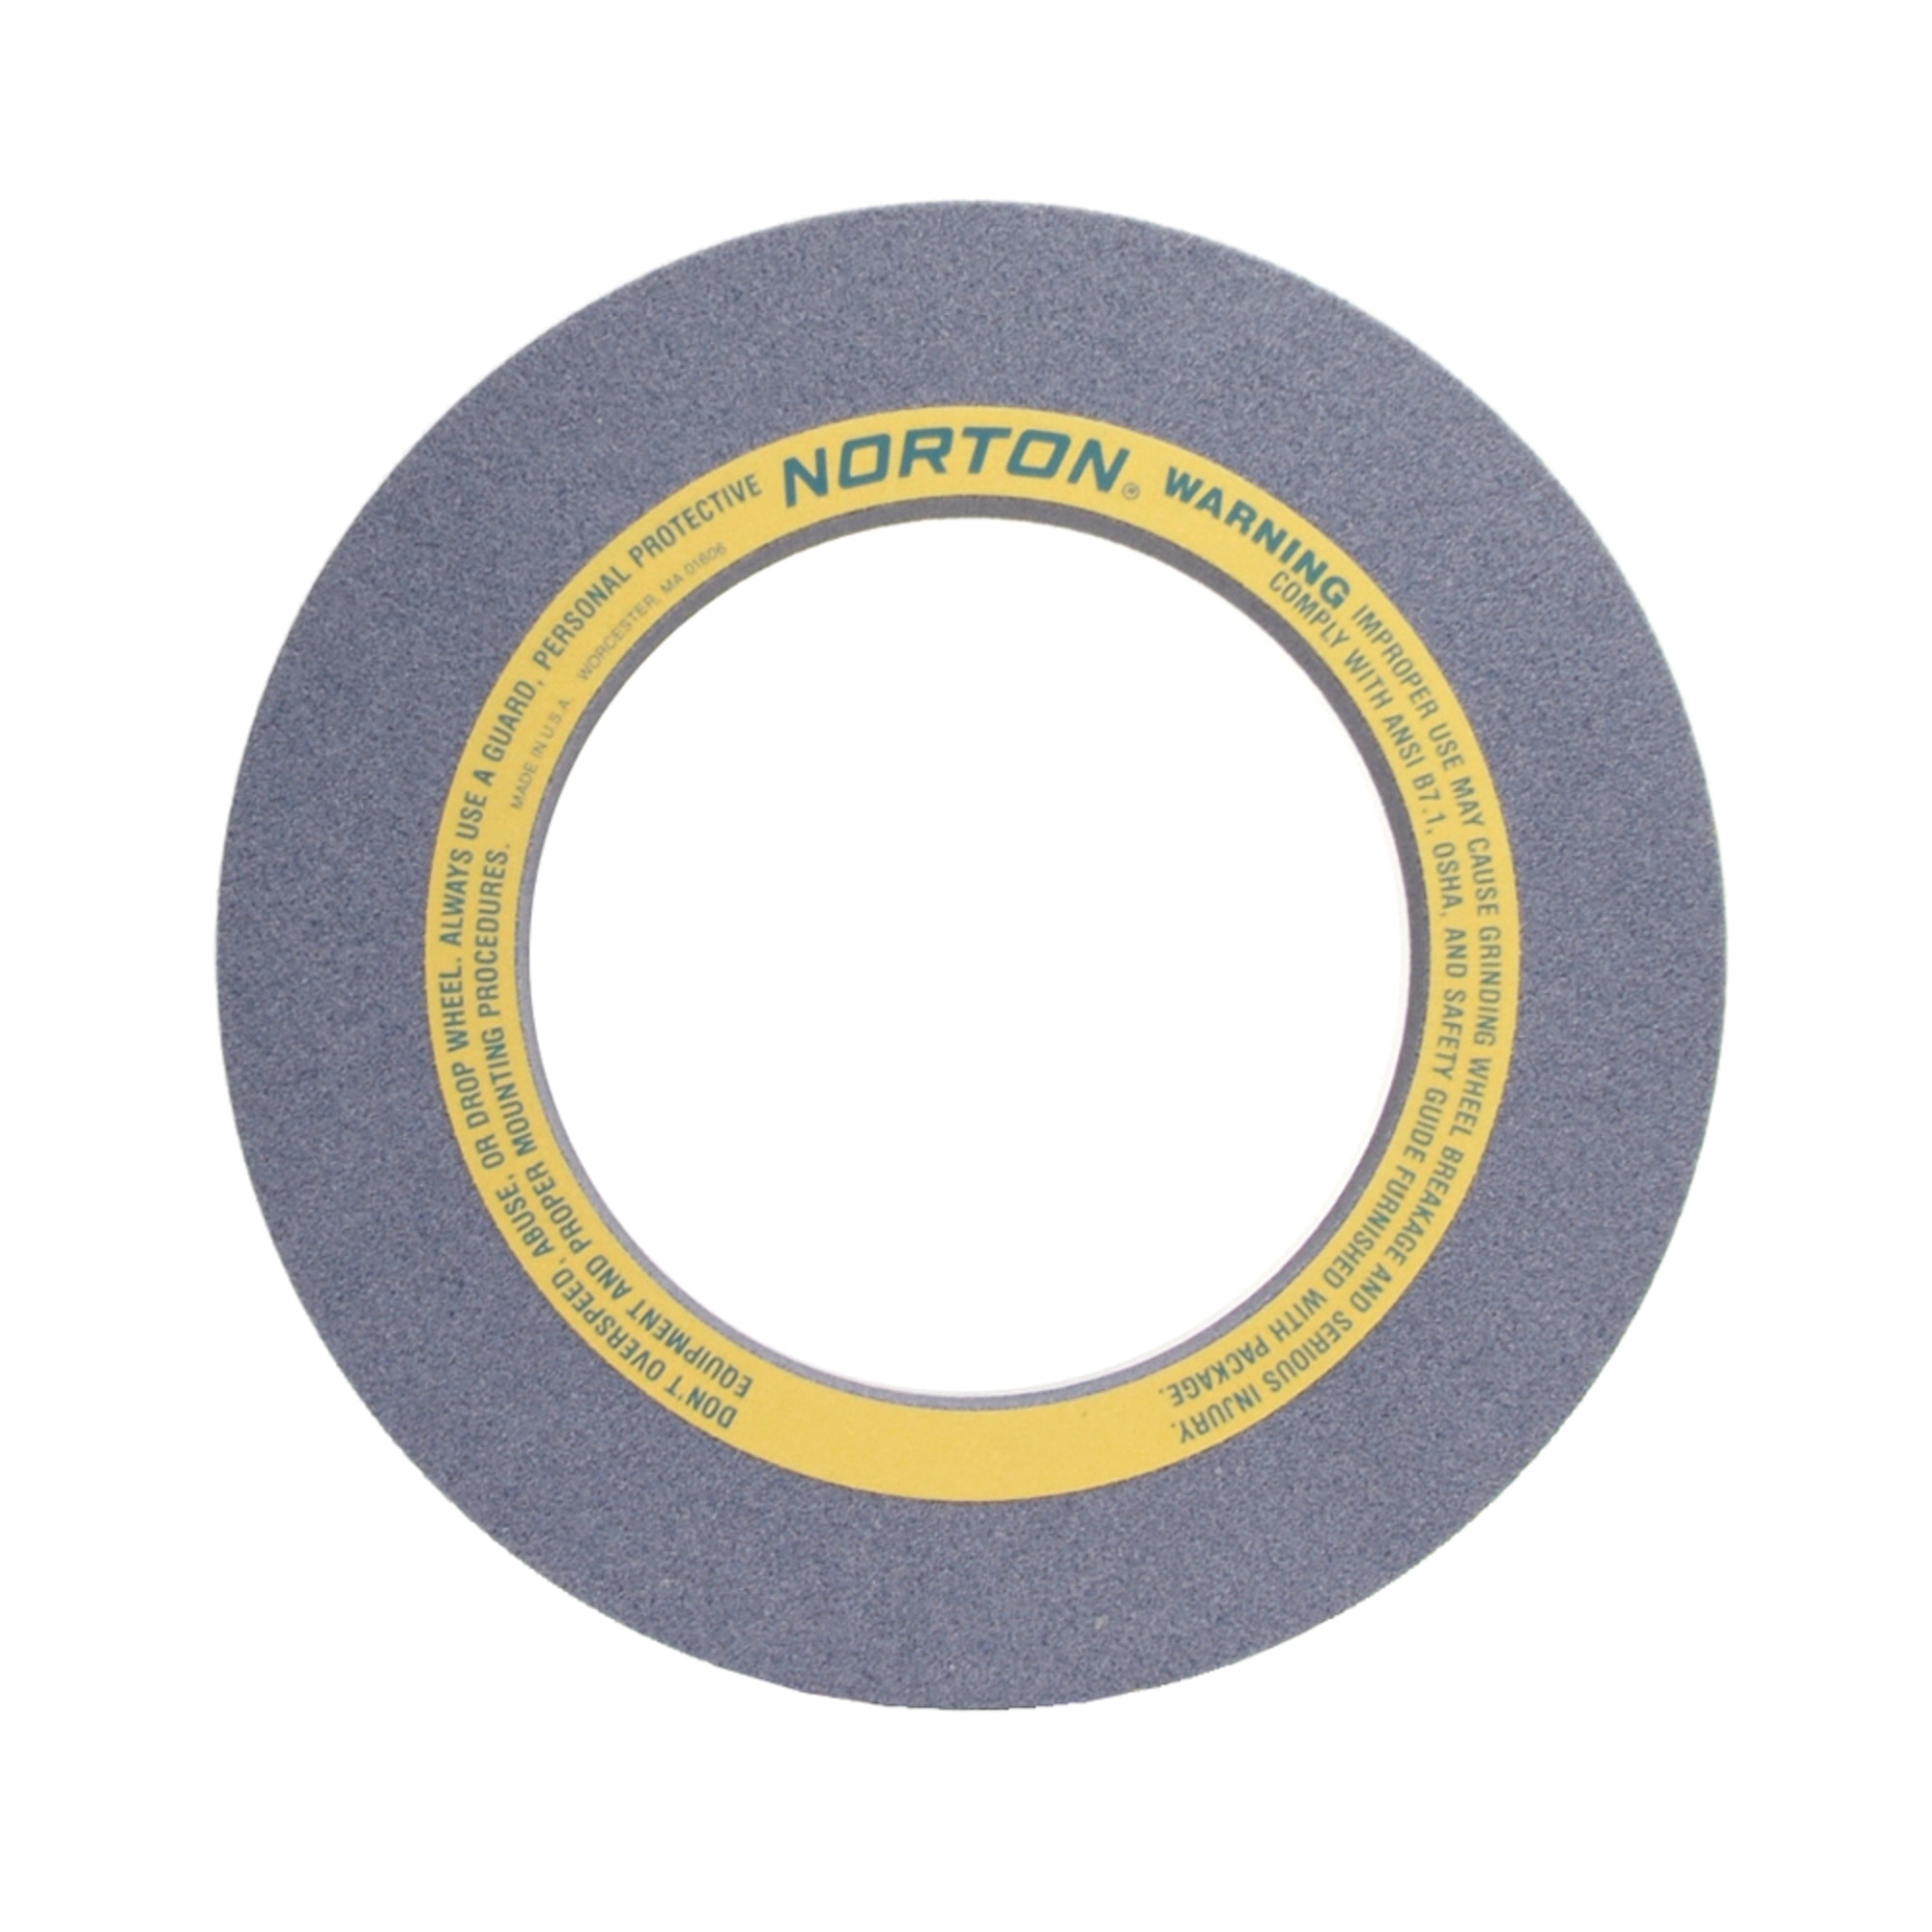 Norton® 69078665455 32A Straight Surface and Cylindrical Grinding Wheel, 20 in Dia x 2 in THK, 12 in Center Hole, 46 Grit, Aluminum Oxide Abrasive